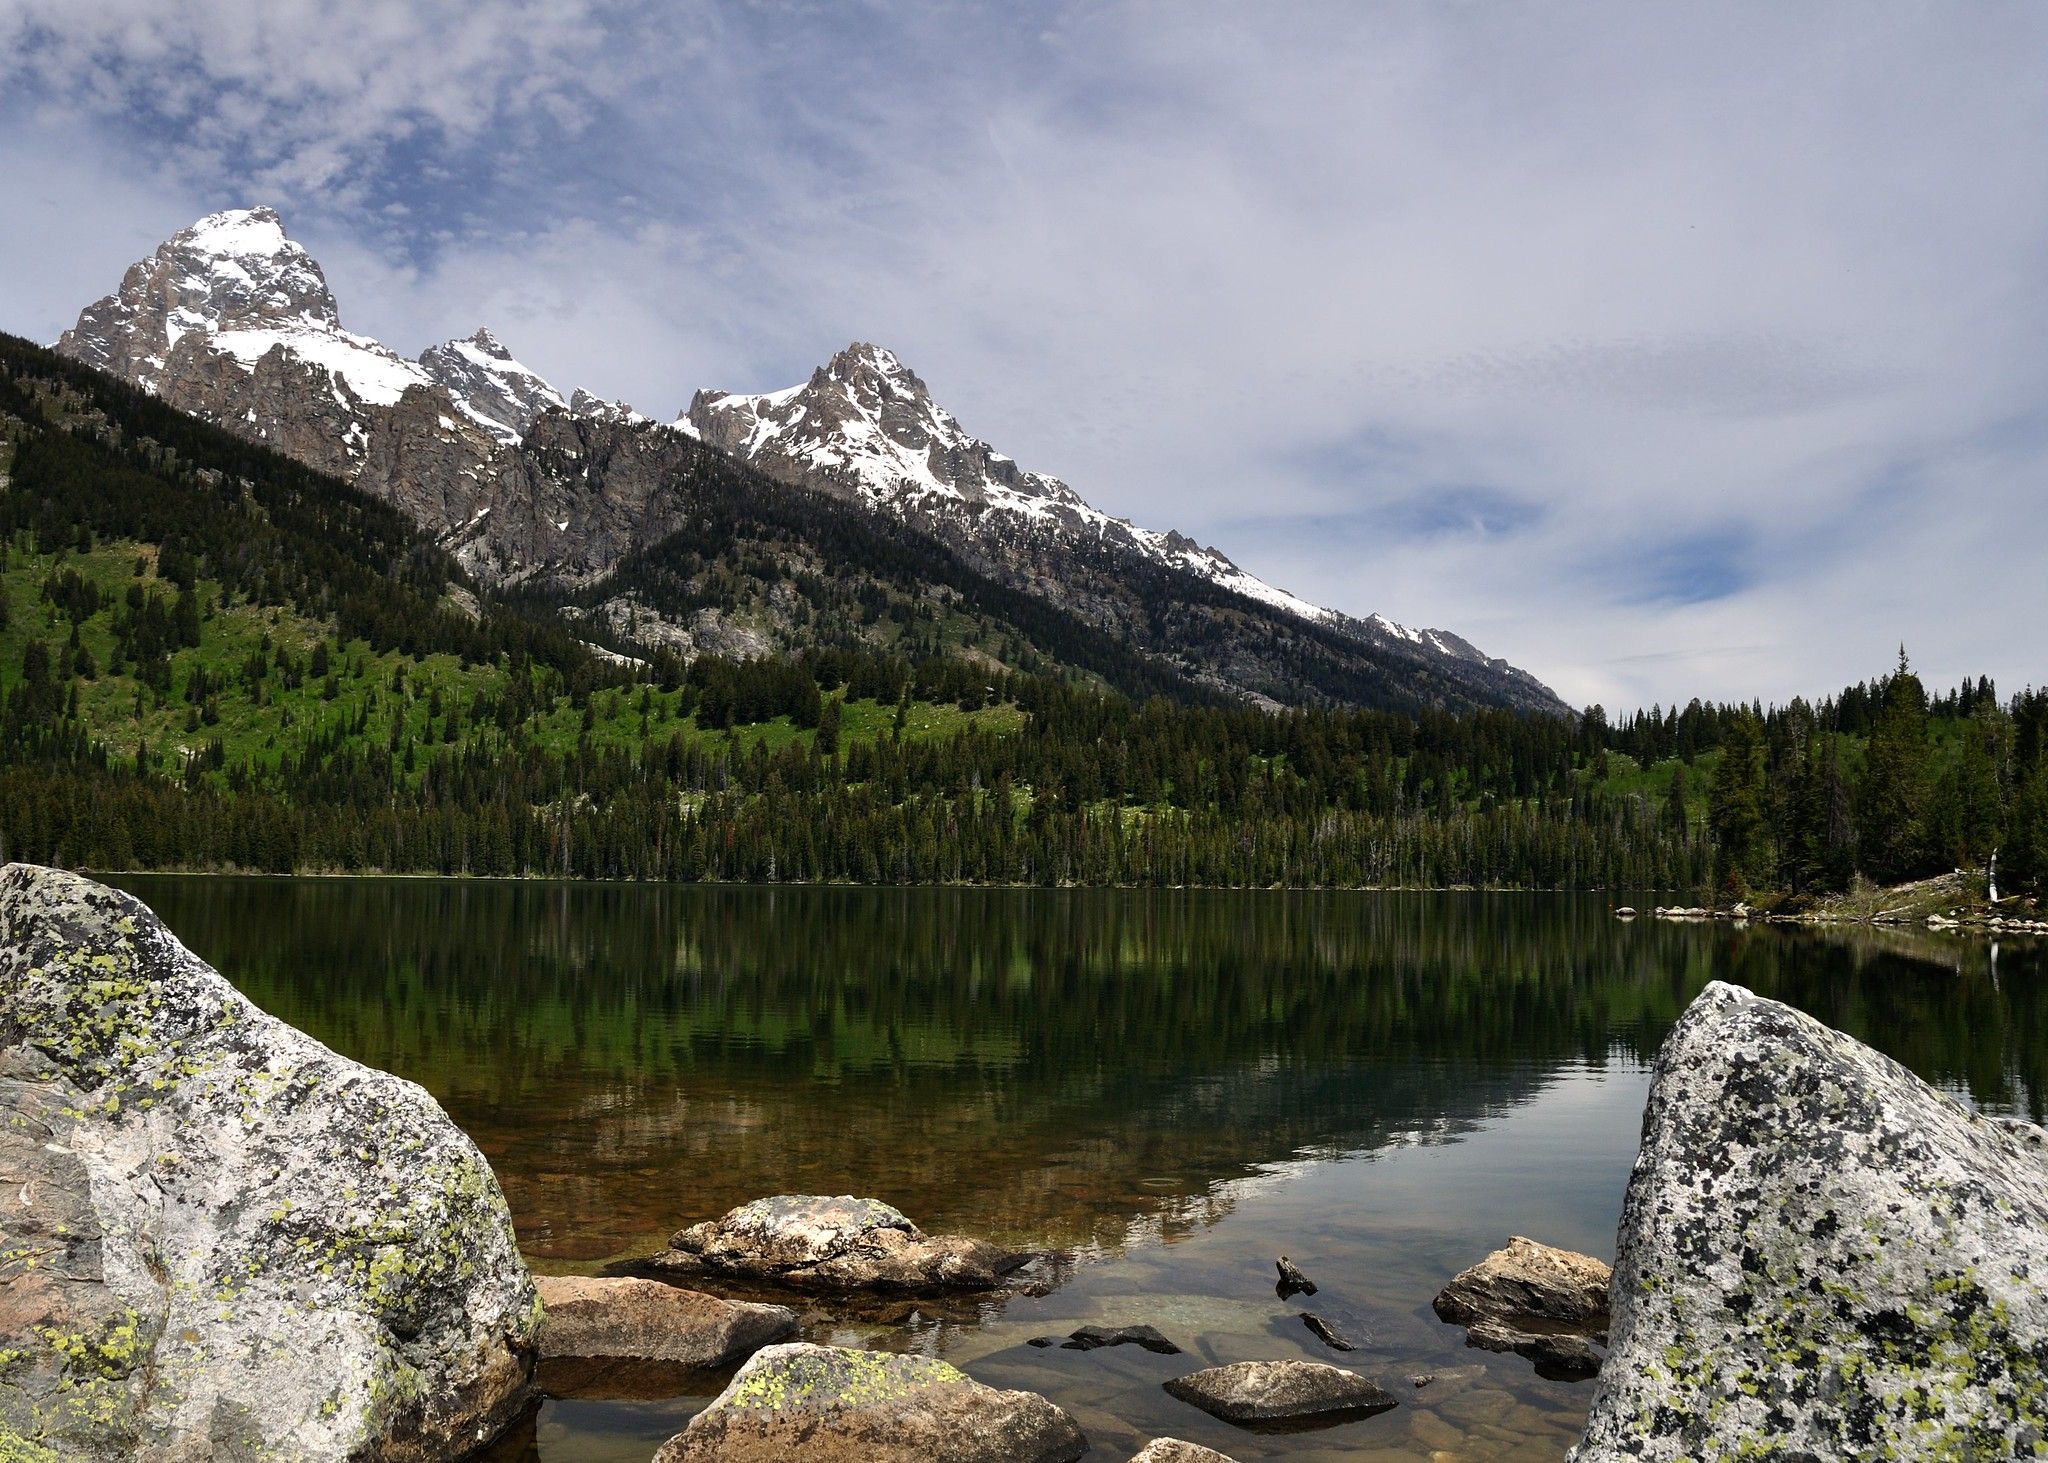 Taggart Lake with Mountain peaks in the background